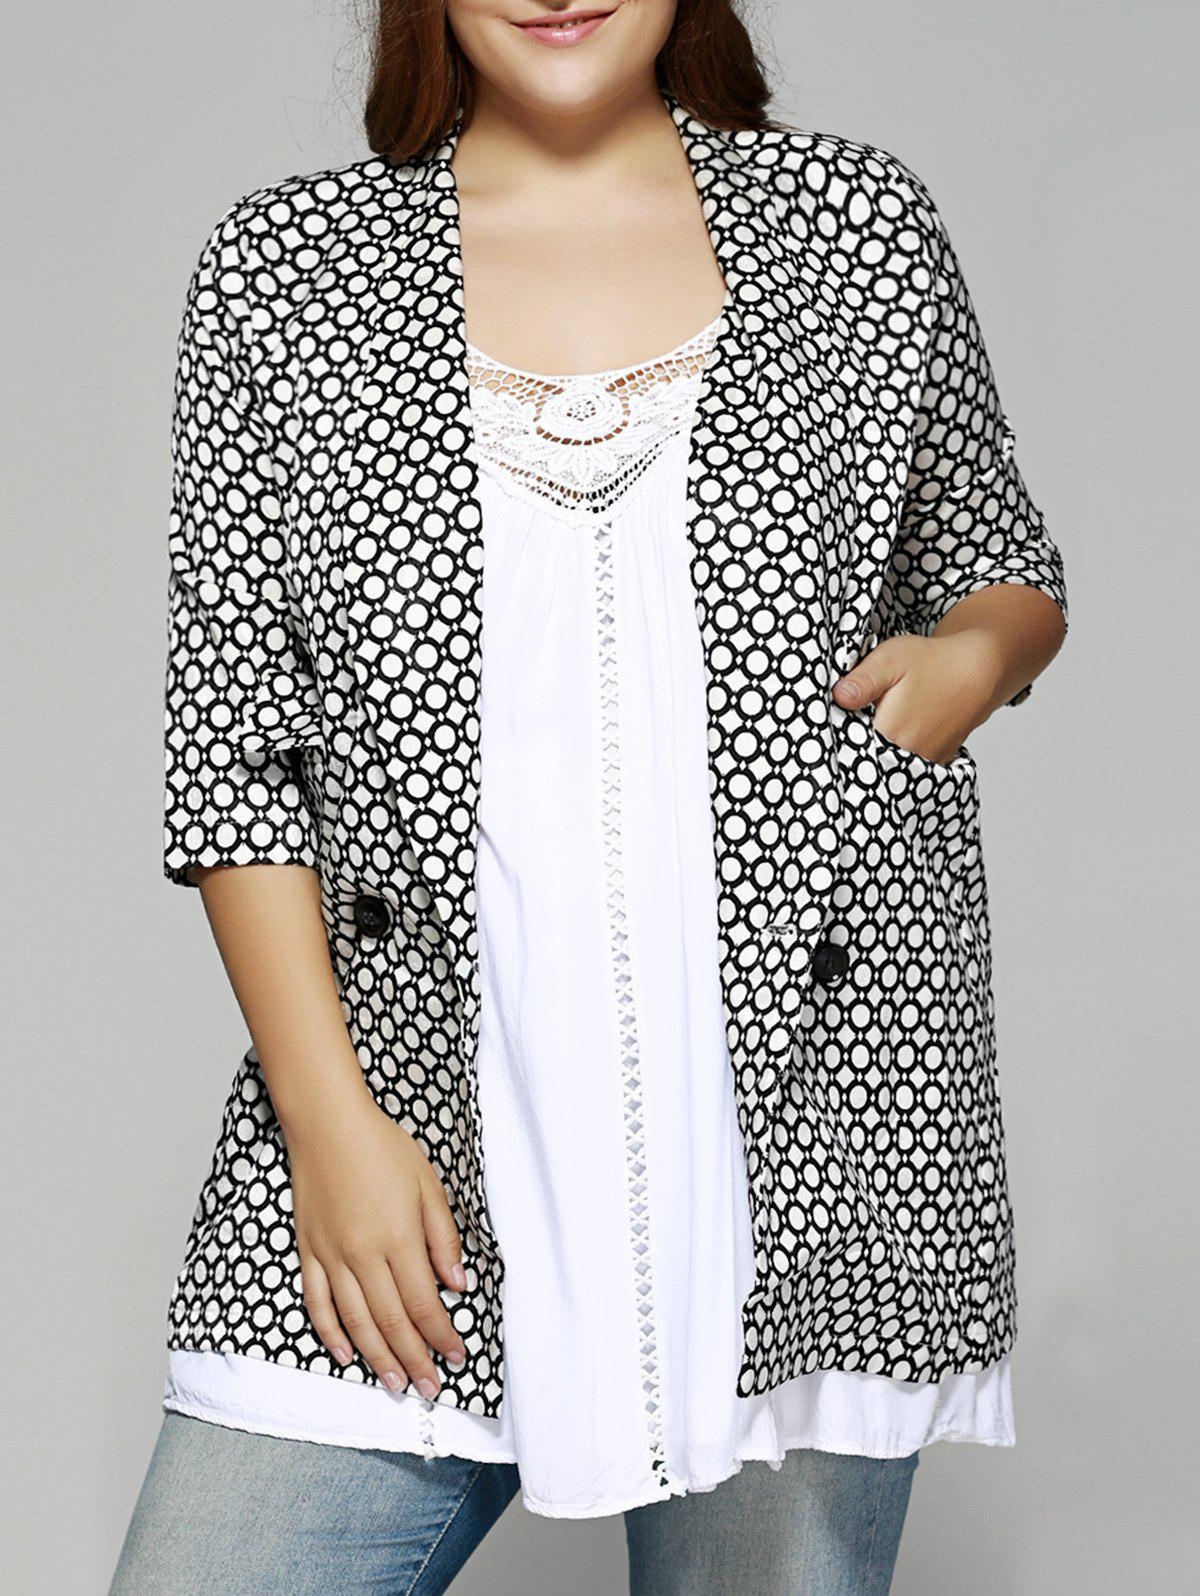 Oversized Shawl Collar Round Pattern Coat - WHITE/BLACK 2XL